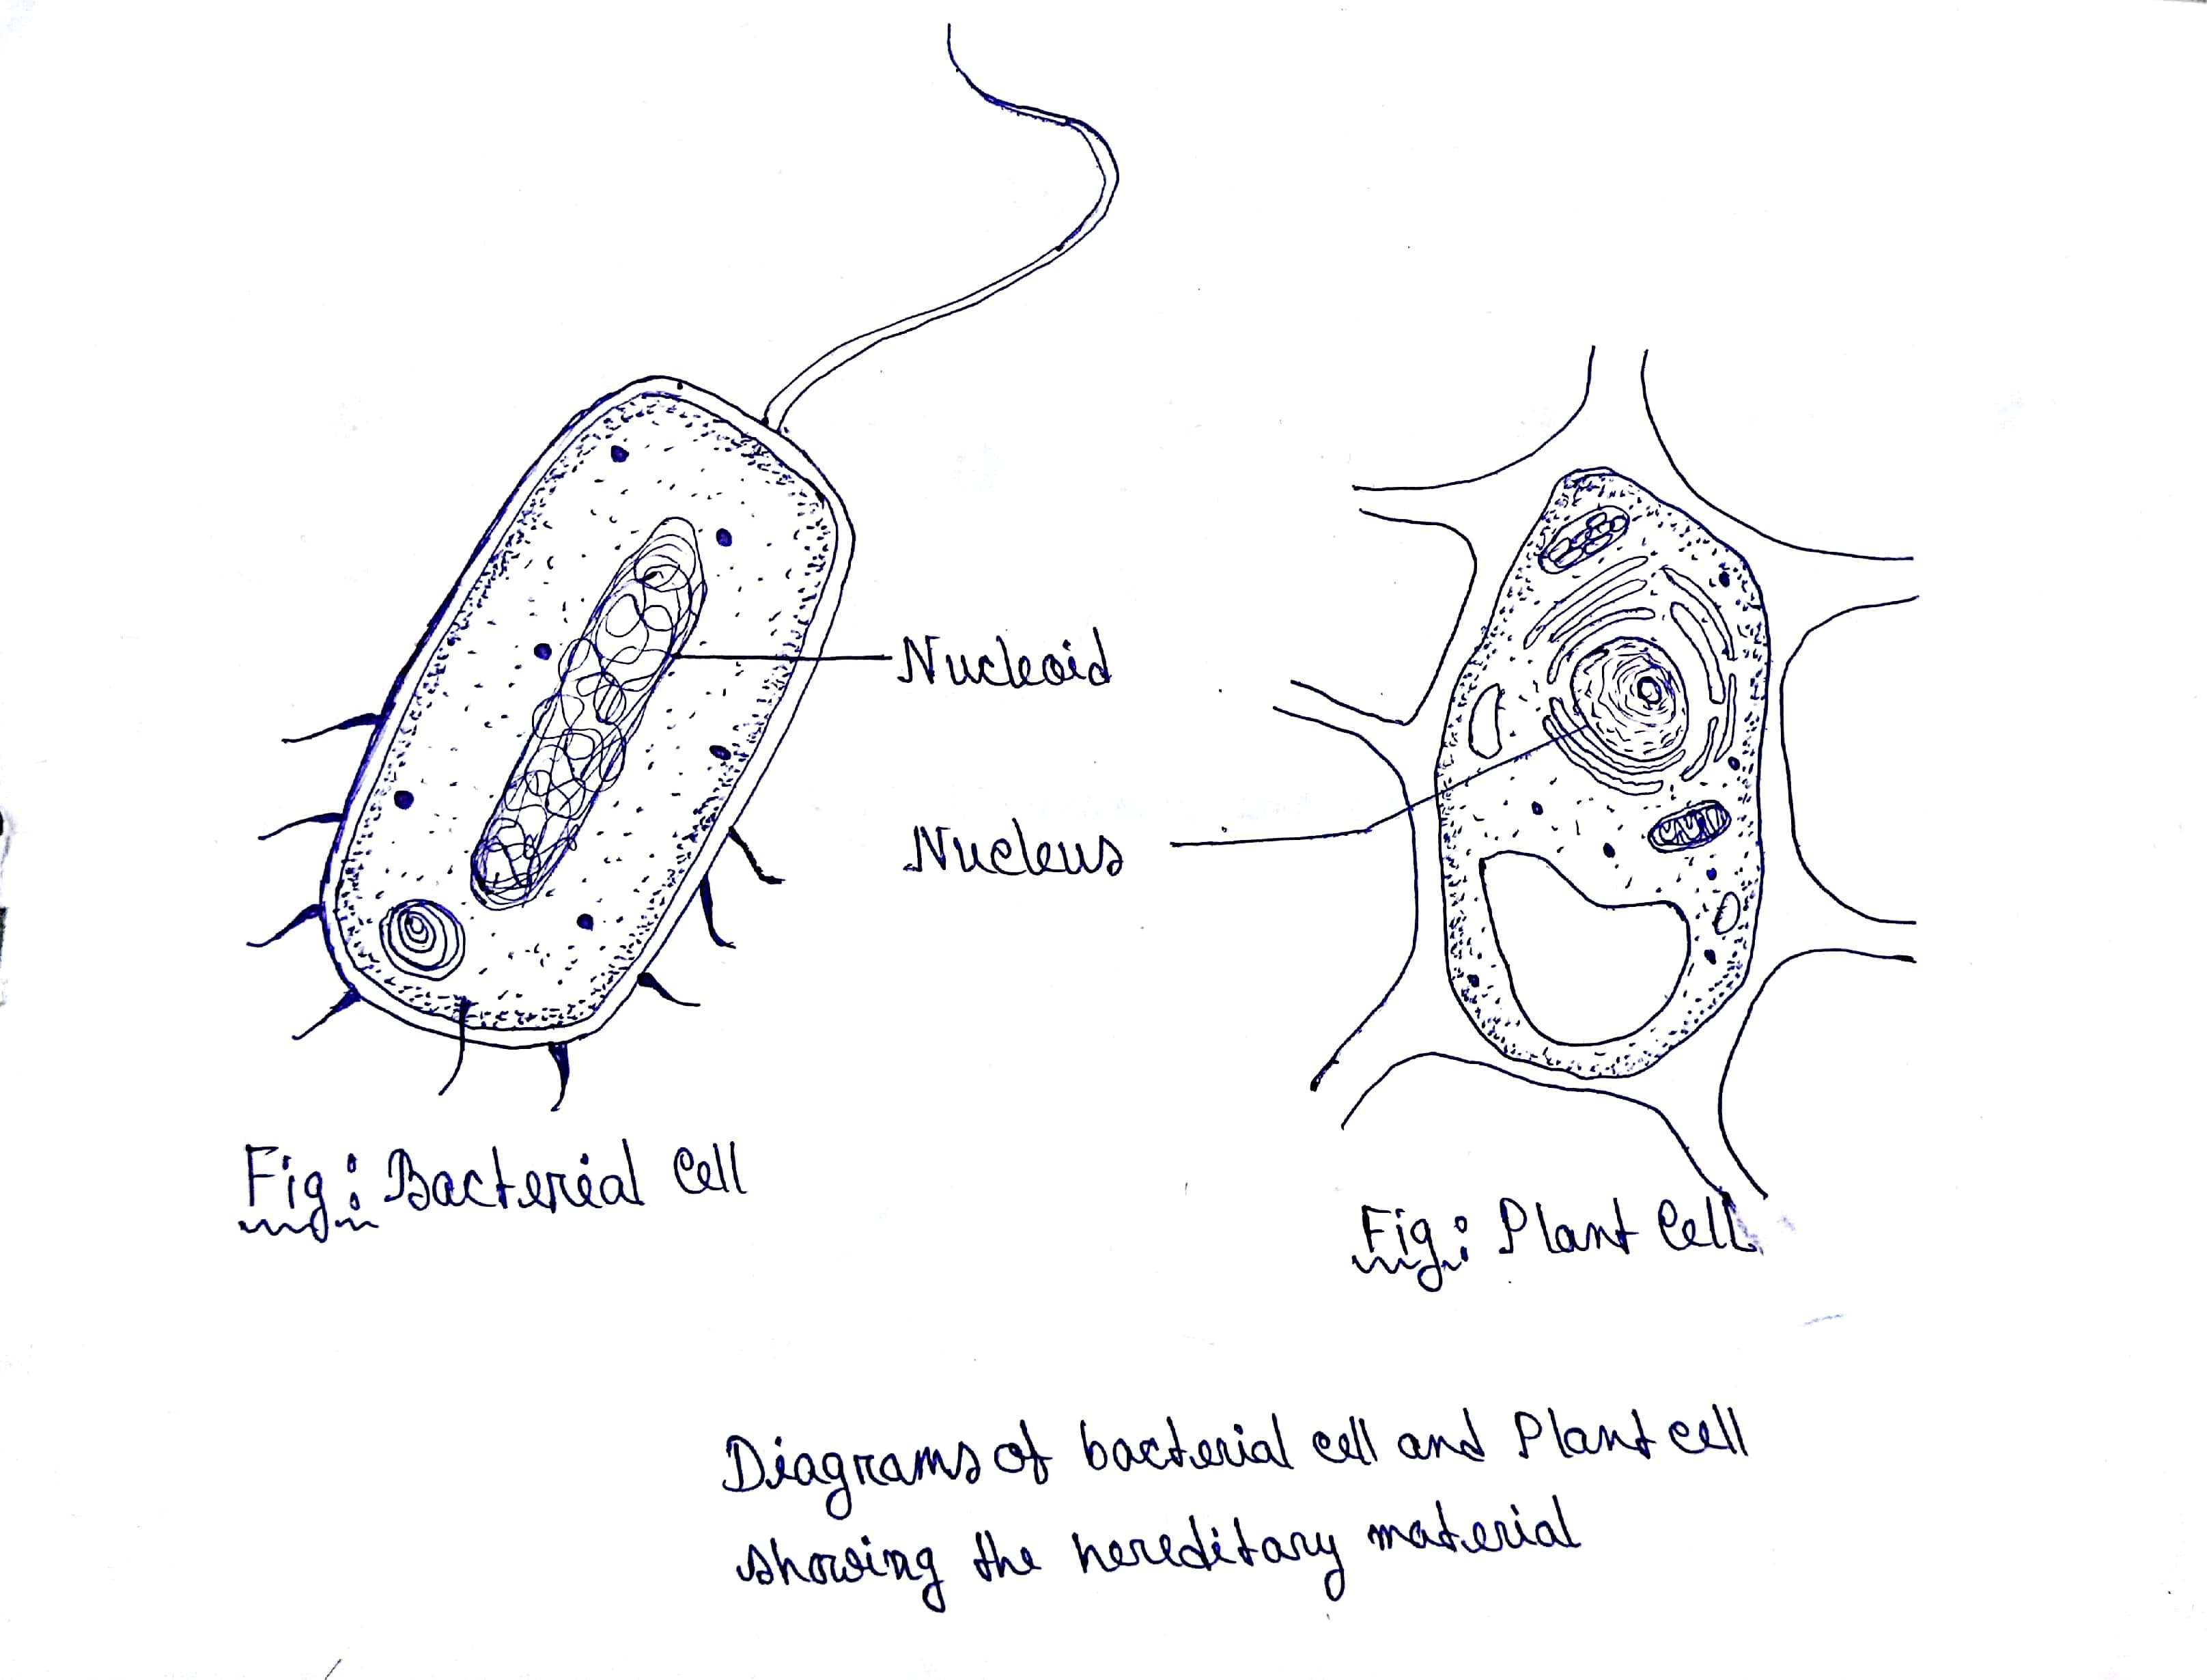 Draw outline diagrams of a bacterial cell and a plant cell ...